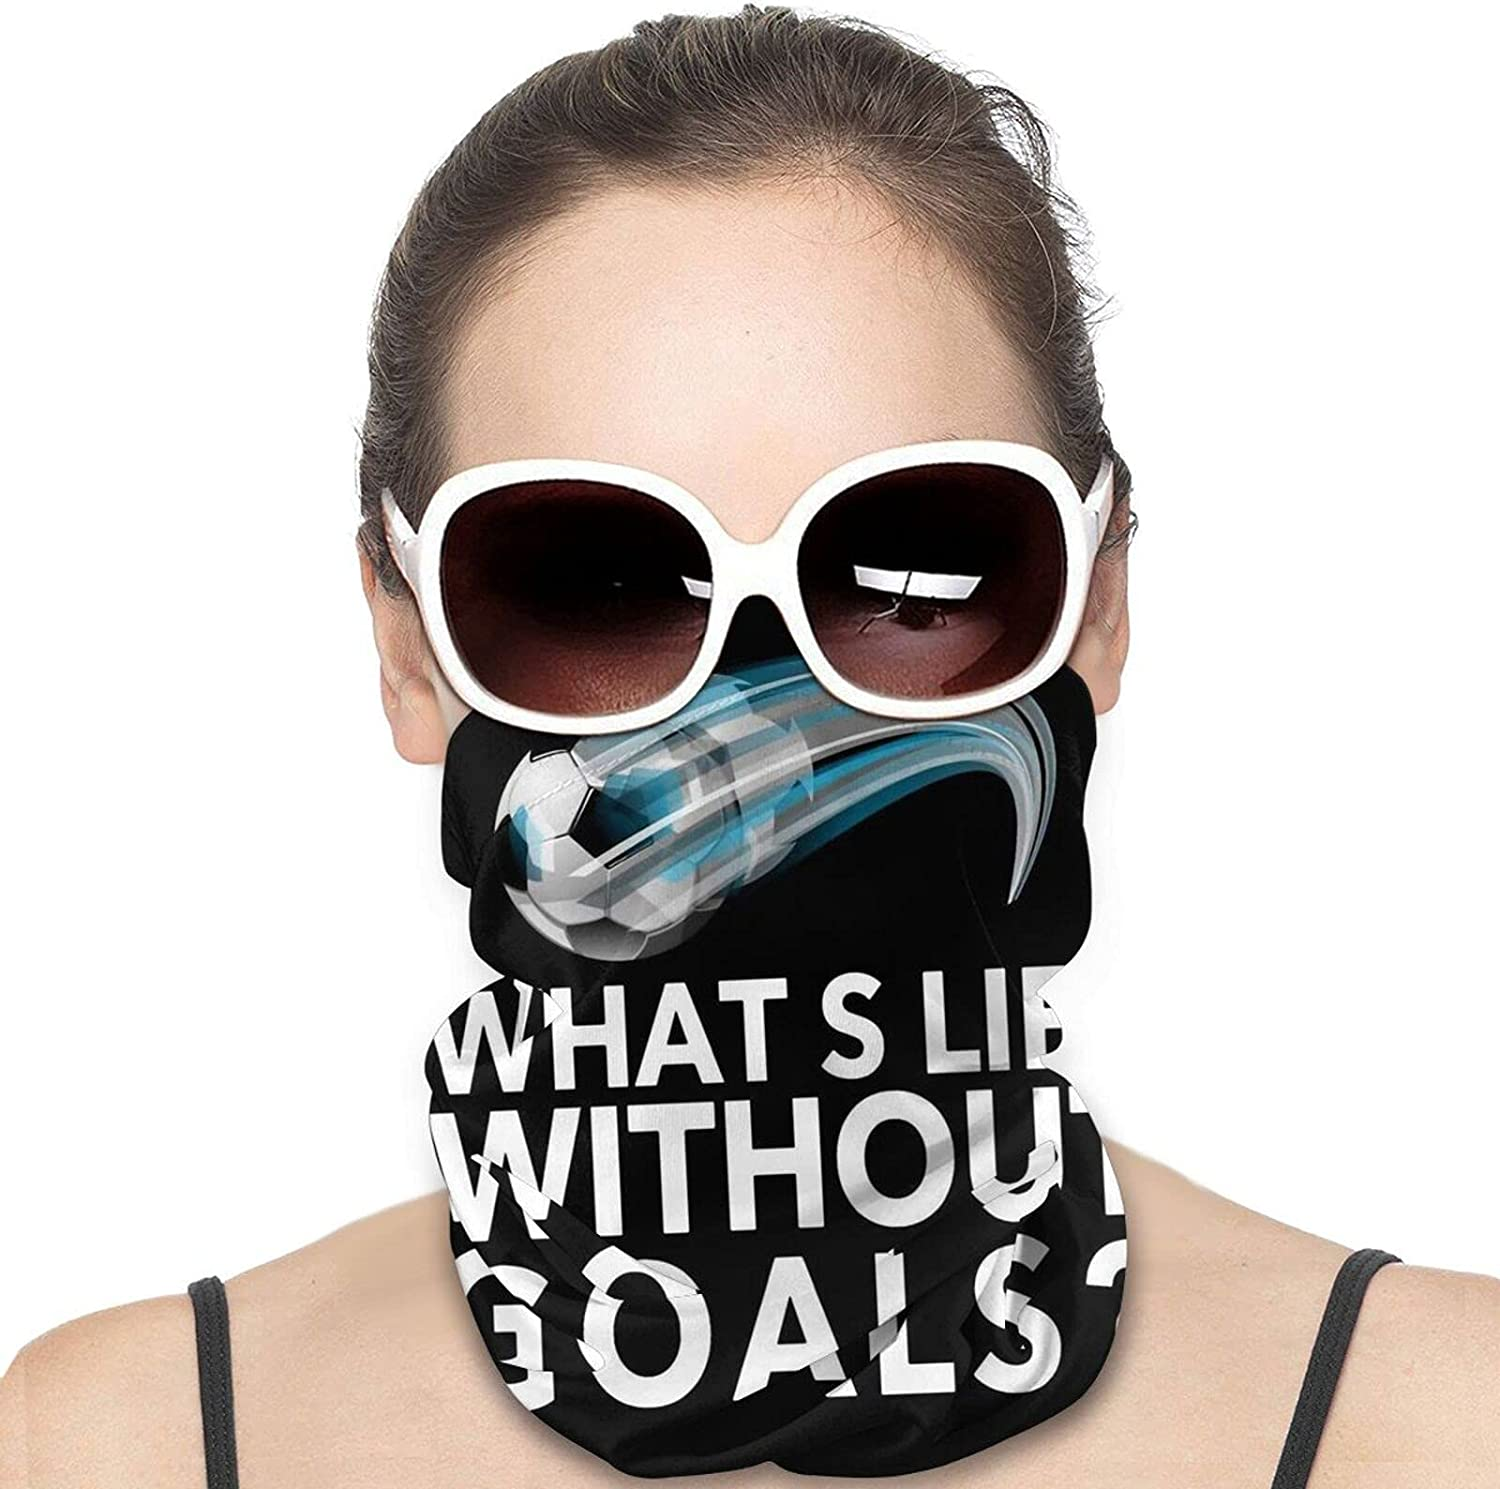 What's Life Without Goals Soccer Neck Gaiter Windproof Face Cover Balaclava Outdoors Magic Scarf Headband for Men Women Motorcycling Fishing Running Climbing